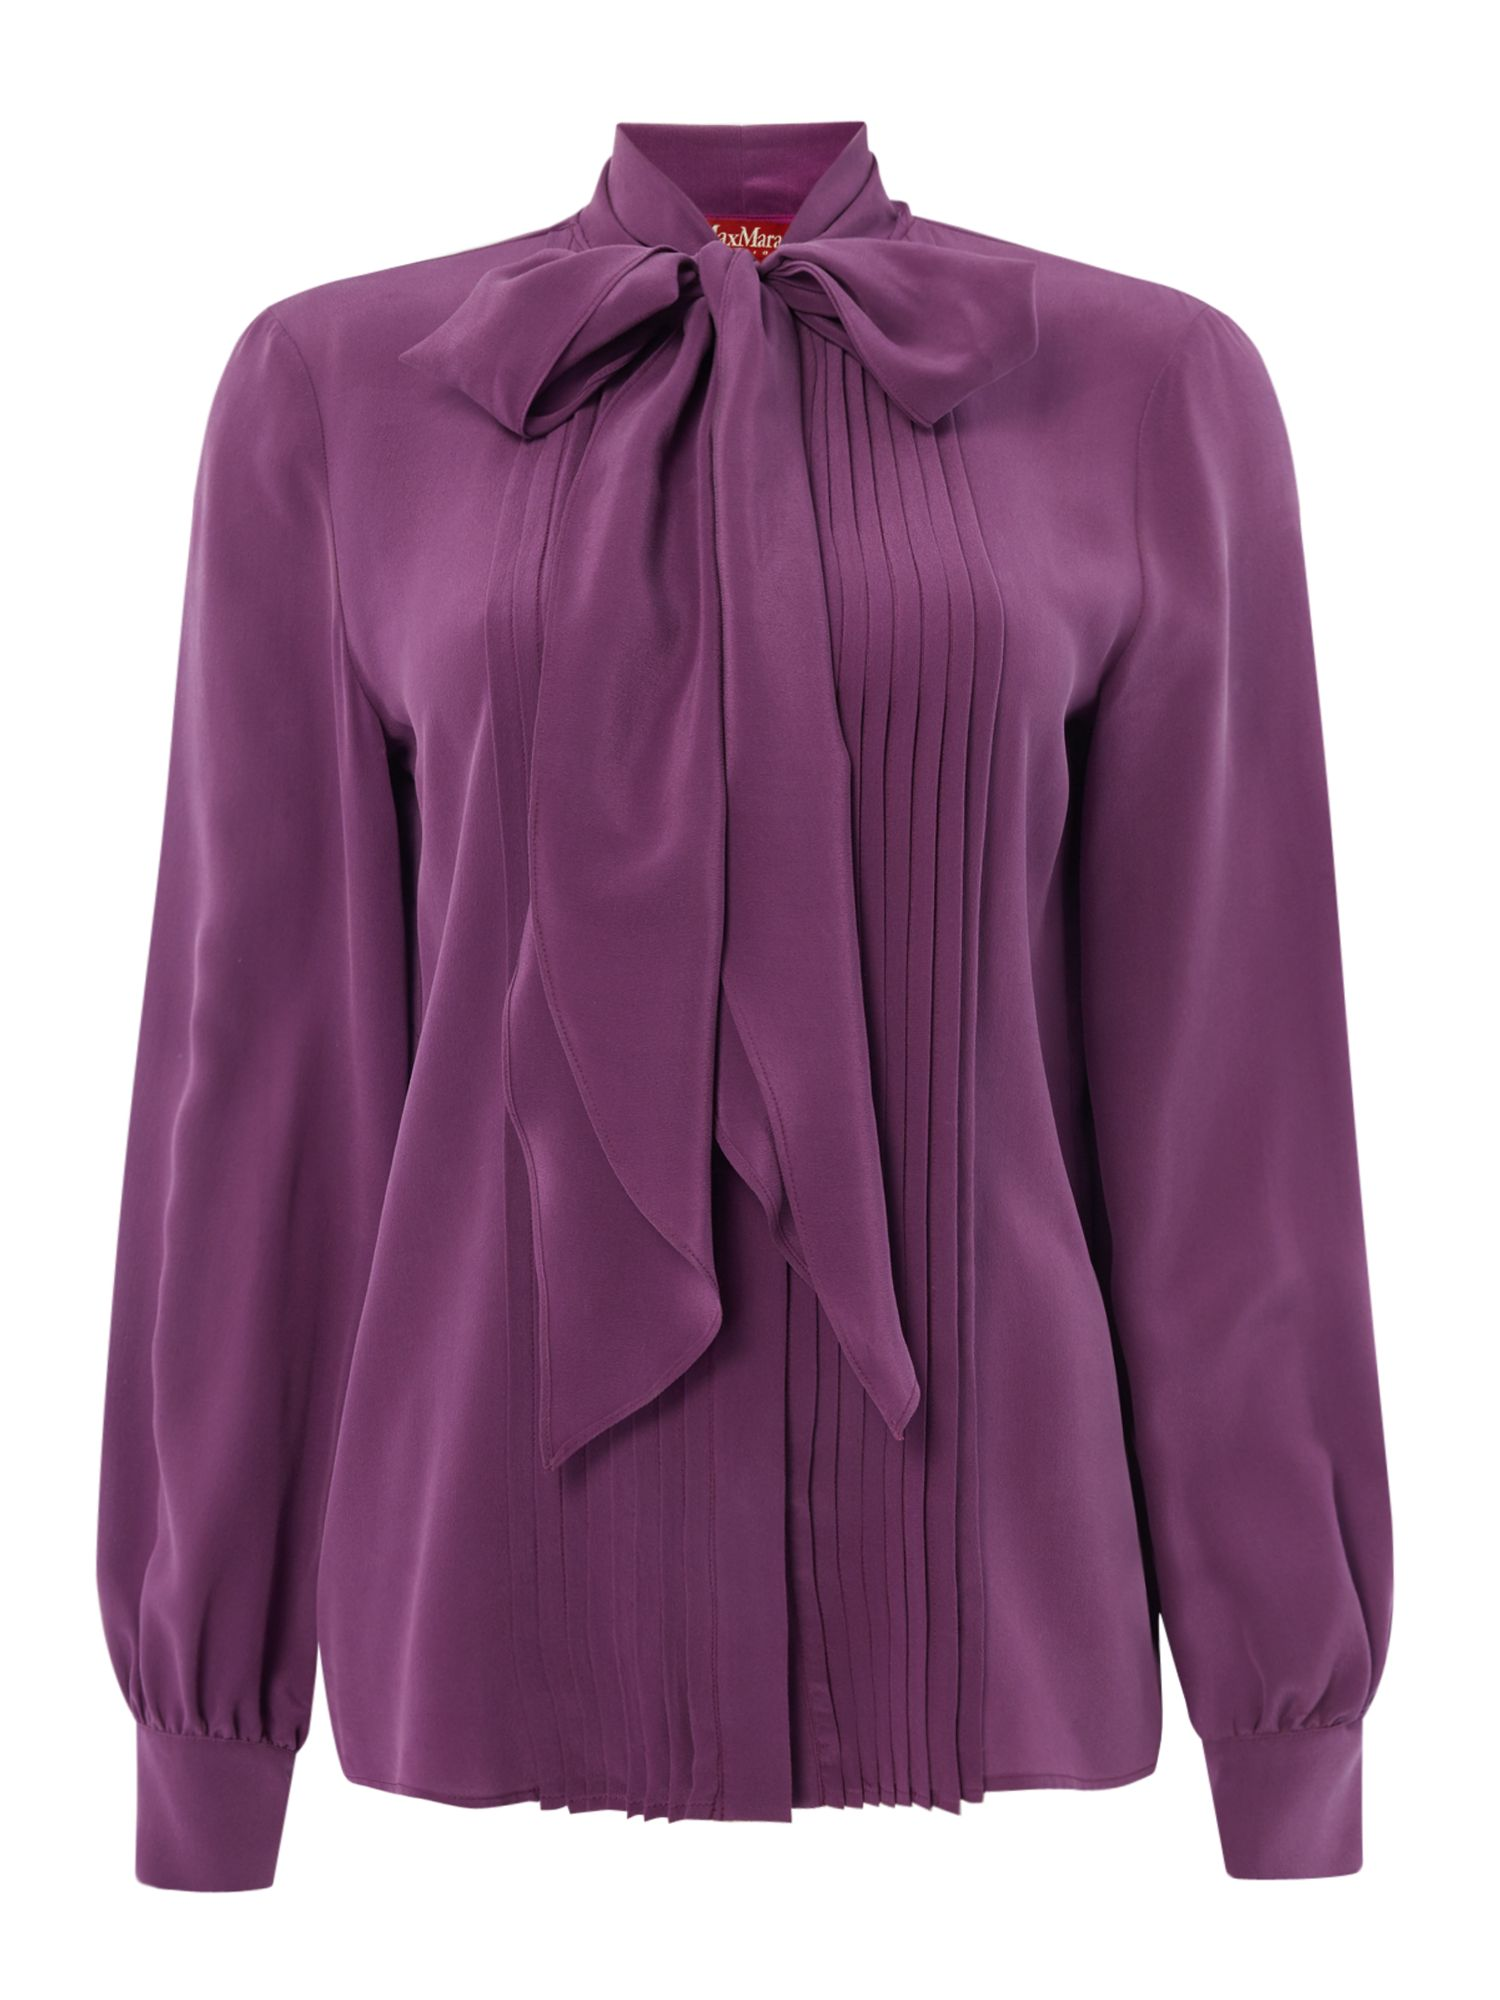 Max Mara Studio Foster tie neck blouse with pleating, Purple